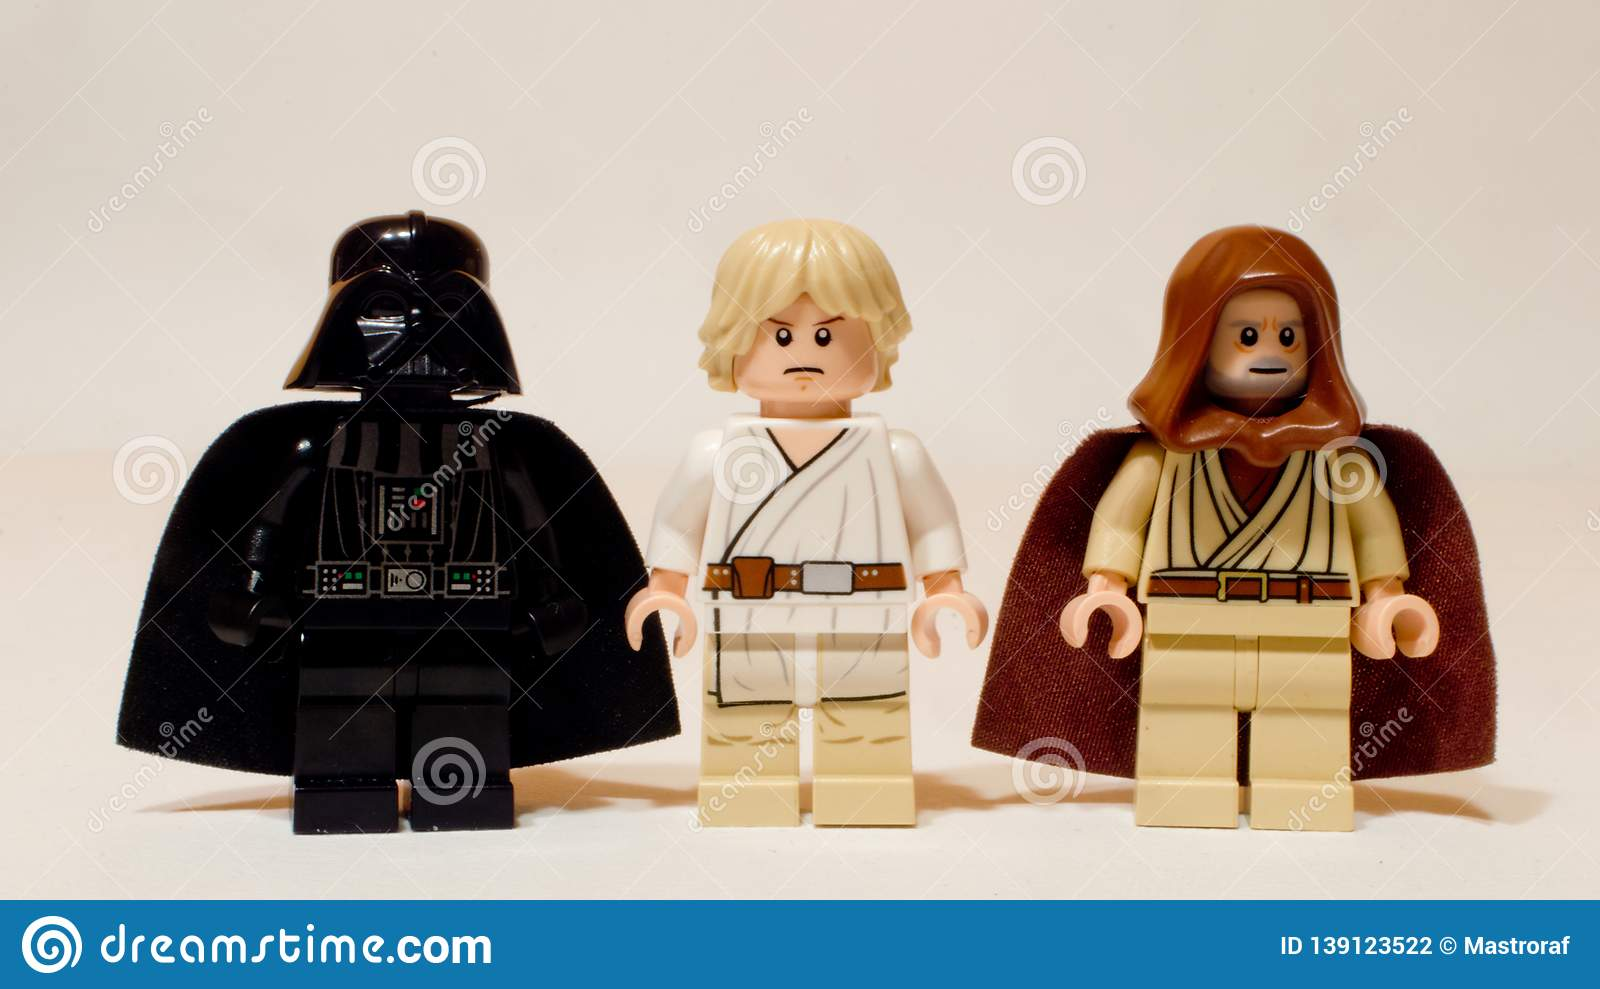 Lego Star Wars Minifigures Editorial Photography Image Of Leia